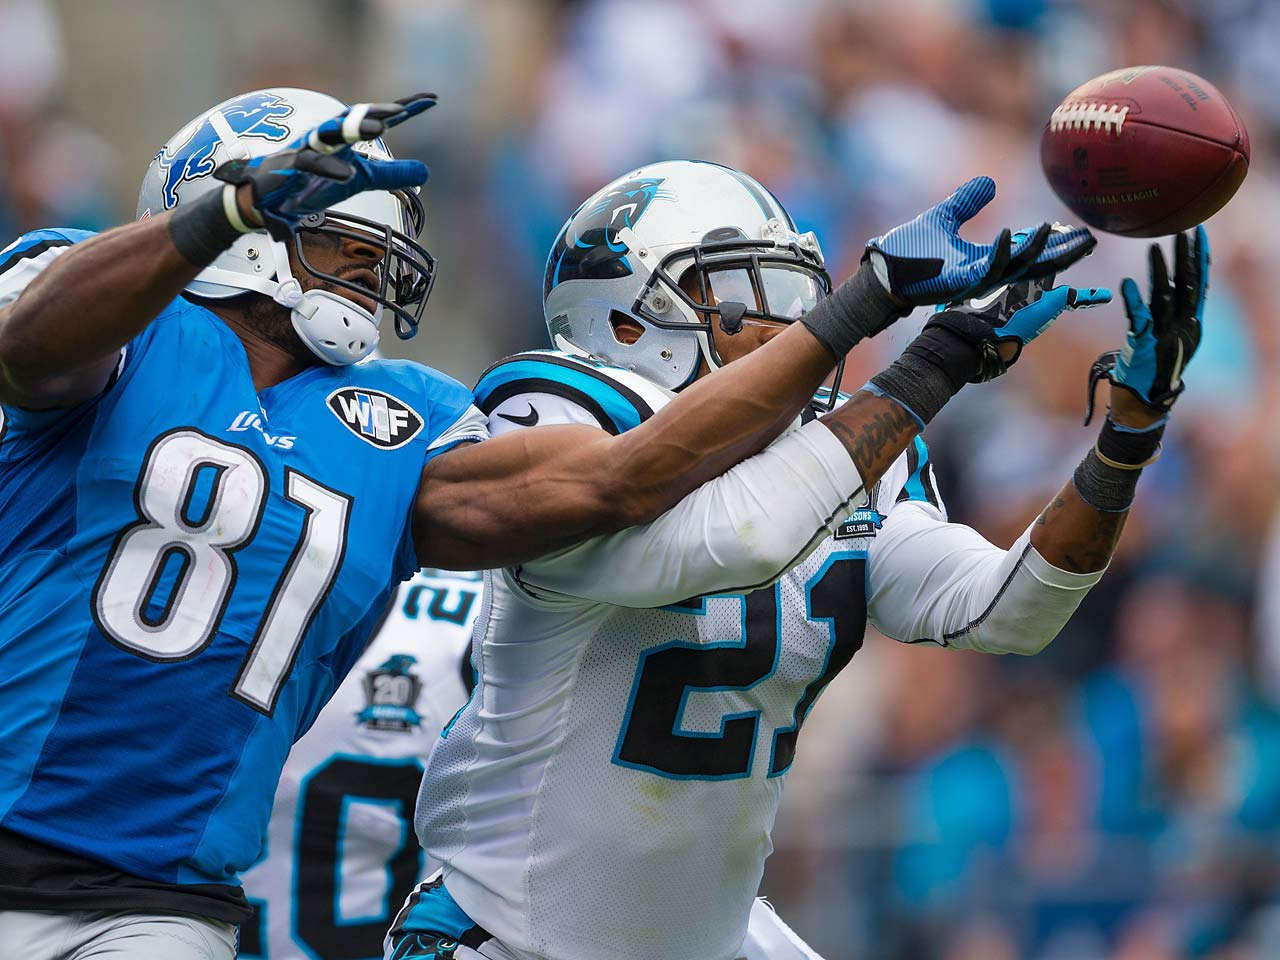 Calvin Johnson failed to score against the Panthers, catching six passes for 83 yards.